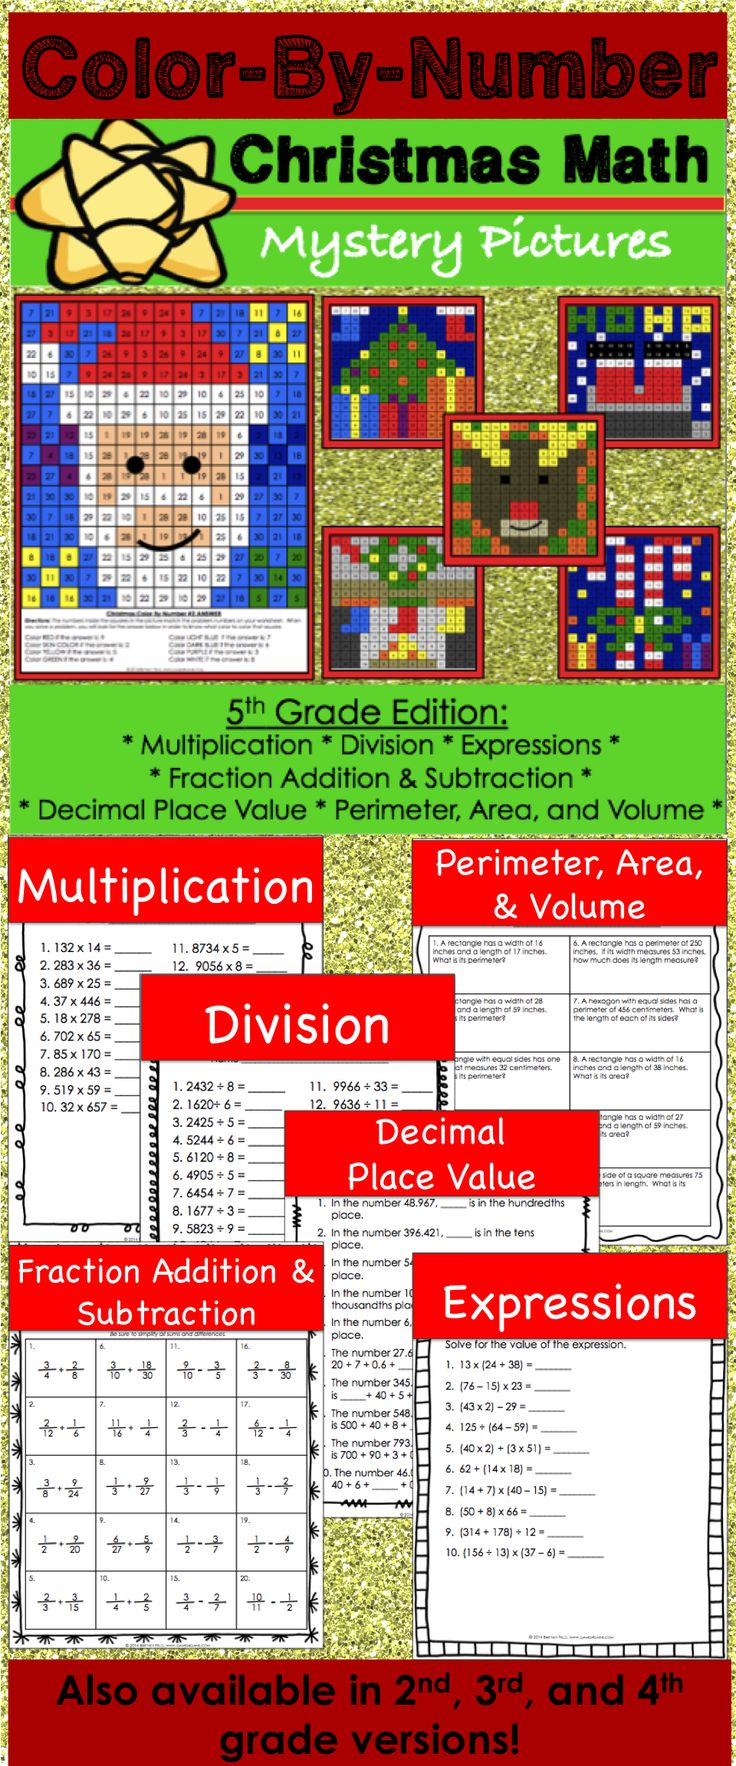 Christmas Math Activity (Color by Number) for 5th grade makes practicing multiplication, division, decimal place value, fraction addition, fraction subtraction, perimeter, area, volume, and evaluating expressions fun! Included are 6 different Christmas color by number math activities. Each activity addresses a different 5th grade math skill.